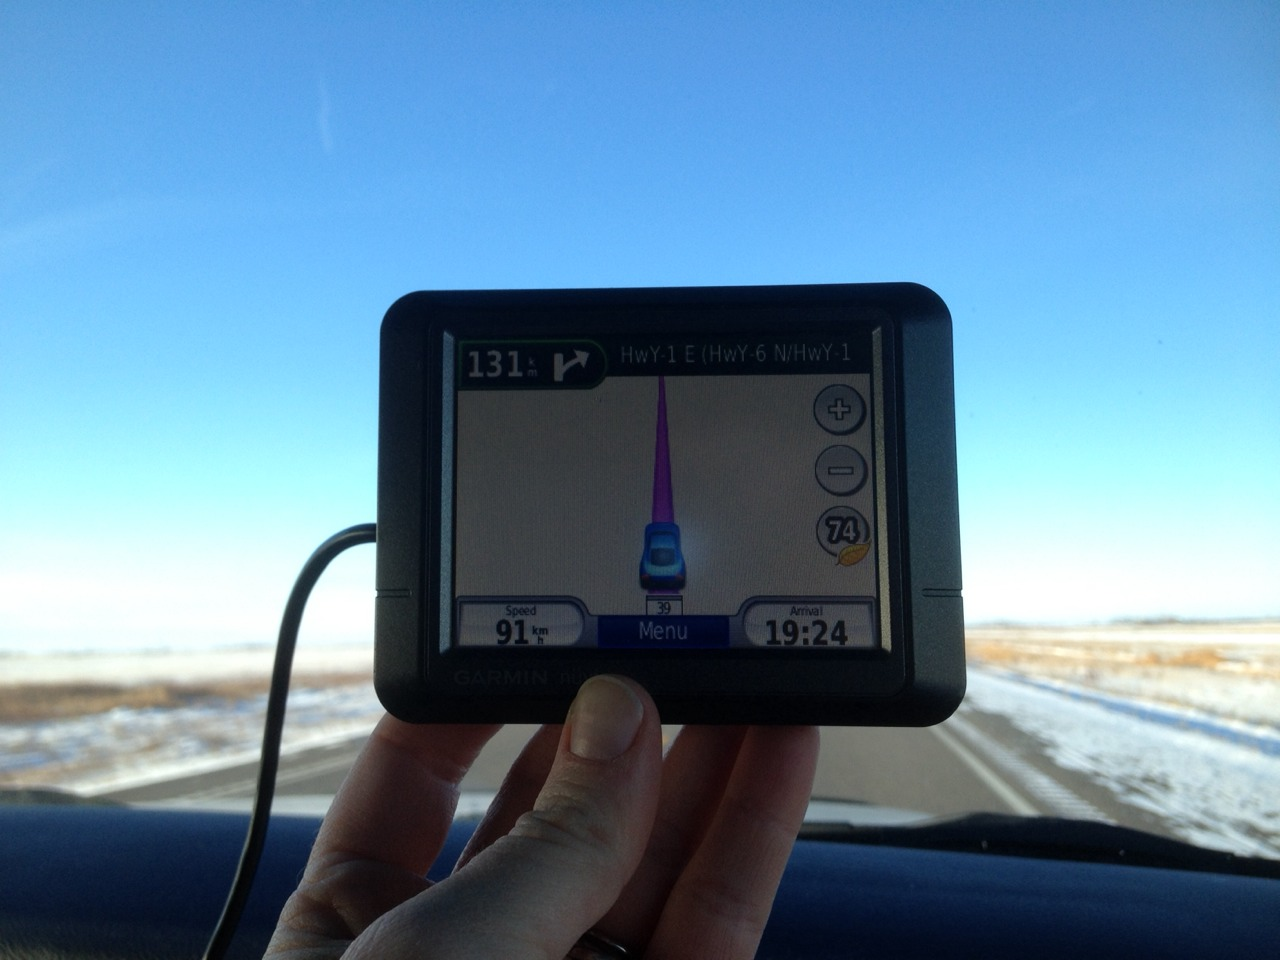 Our first view of Saskatchewan.